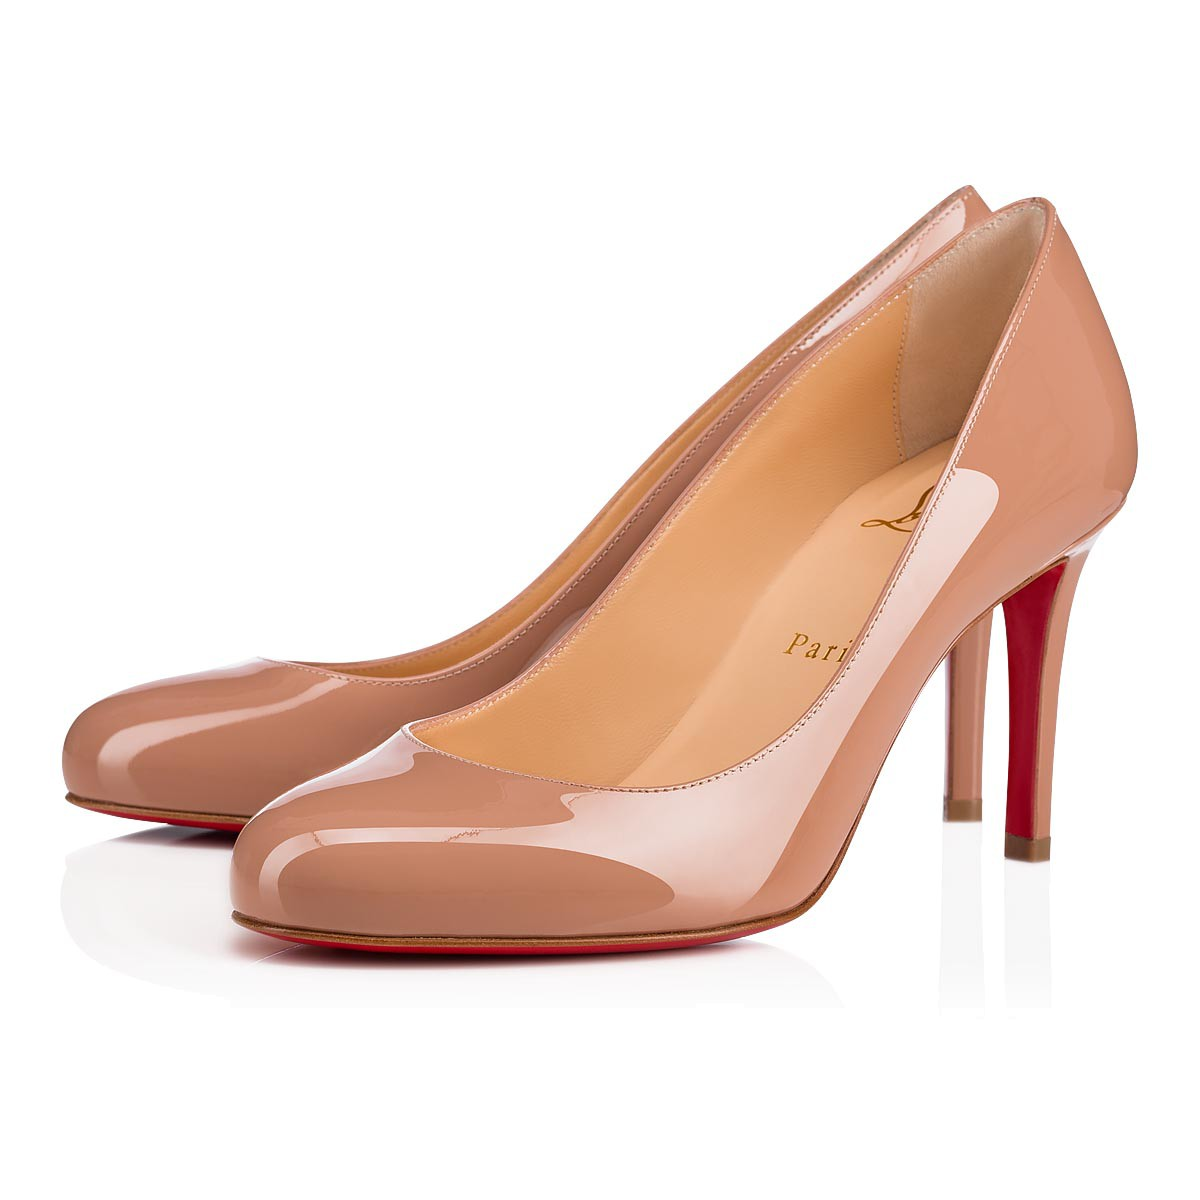 the best attitude 68ee5 914f2 Fifille 85 Nude Patent Leather - Women Shoes - Christian Louboutin